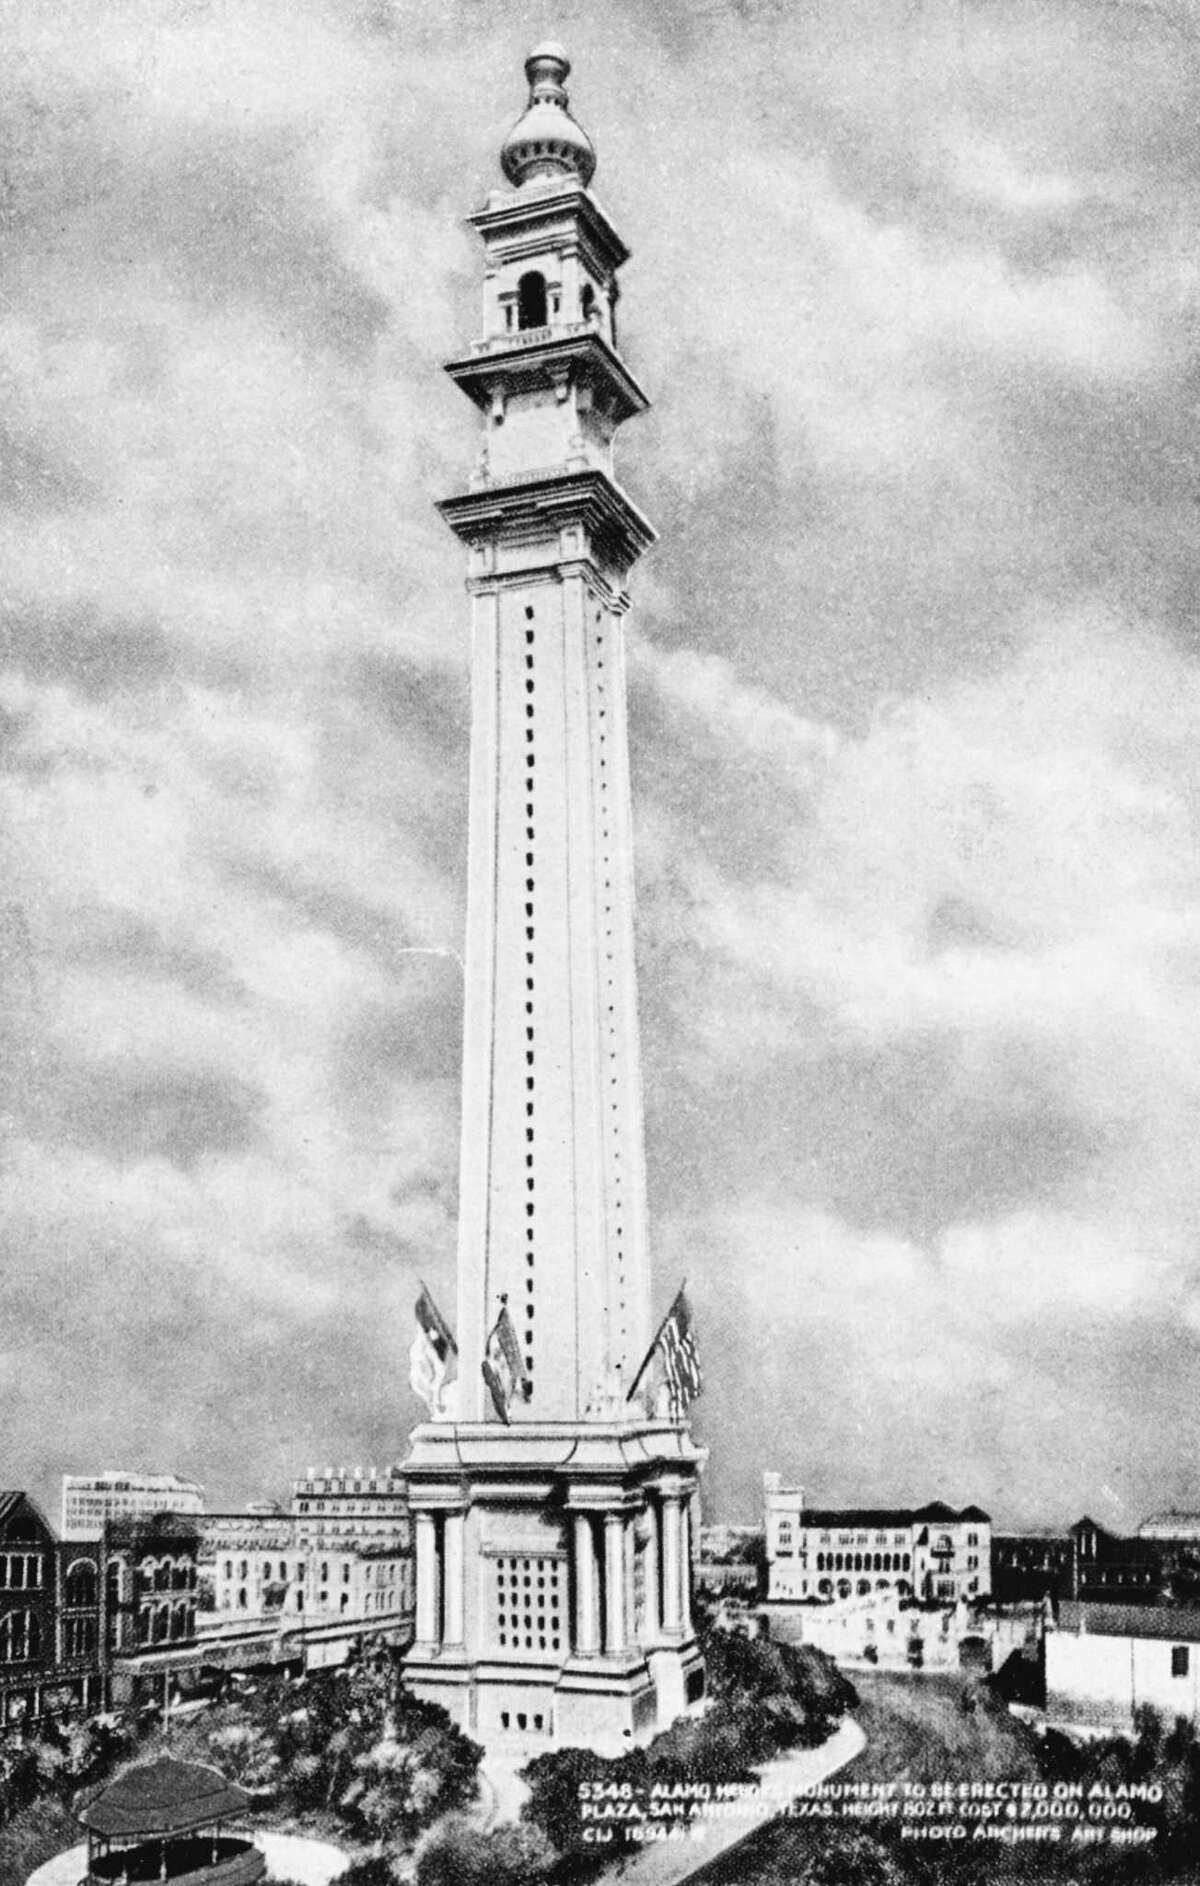 In 1912, the Alamo Heroes Monument Association had an architectural drawing prepared to use in the fund-raising process for a proposed 802-foot-tall monument. It would have been the tallest manmade object in the nation and the second-highest in the world at the time, after the Eiffel Tower. The association was unable to raise enough money.